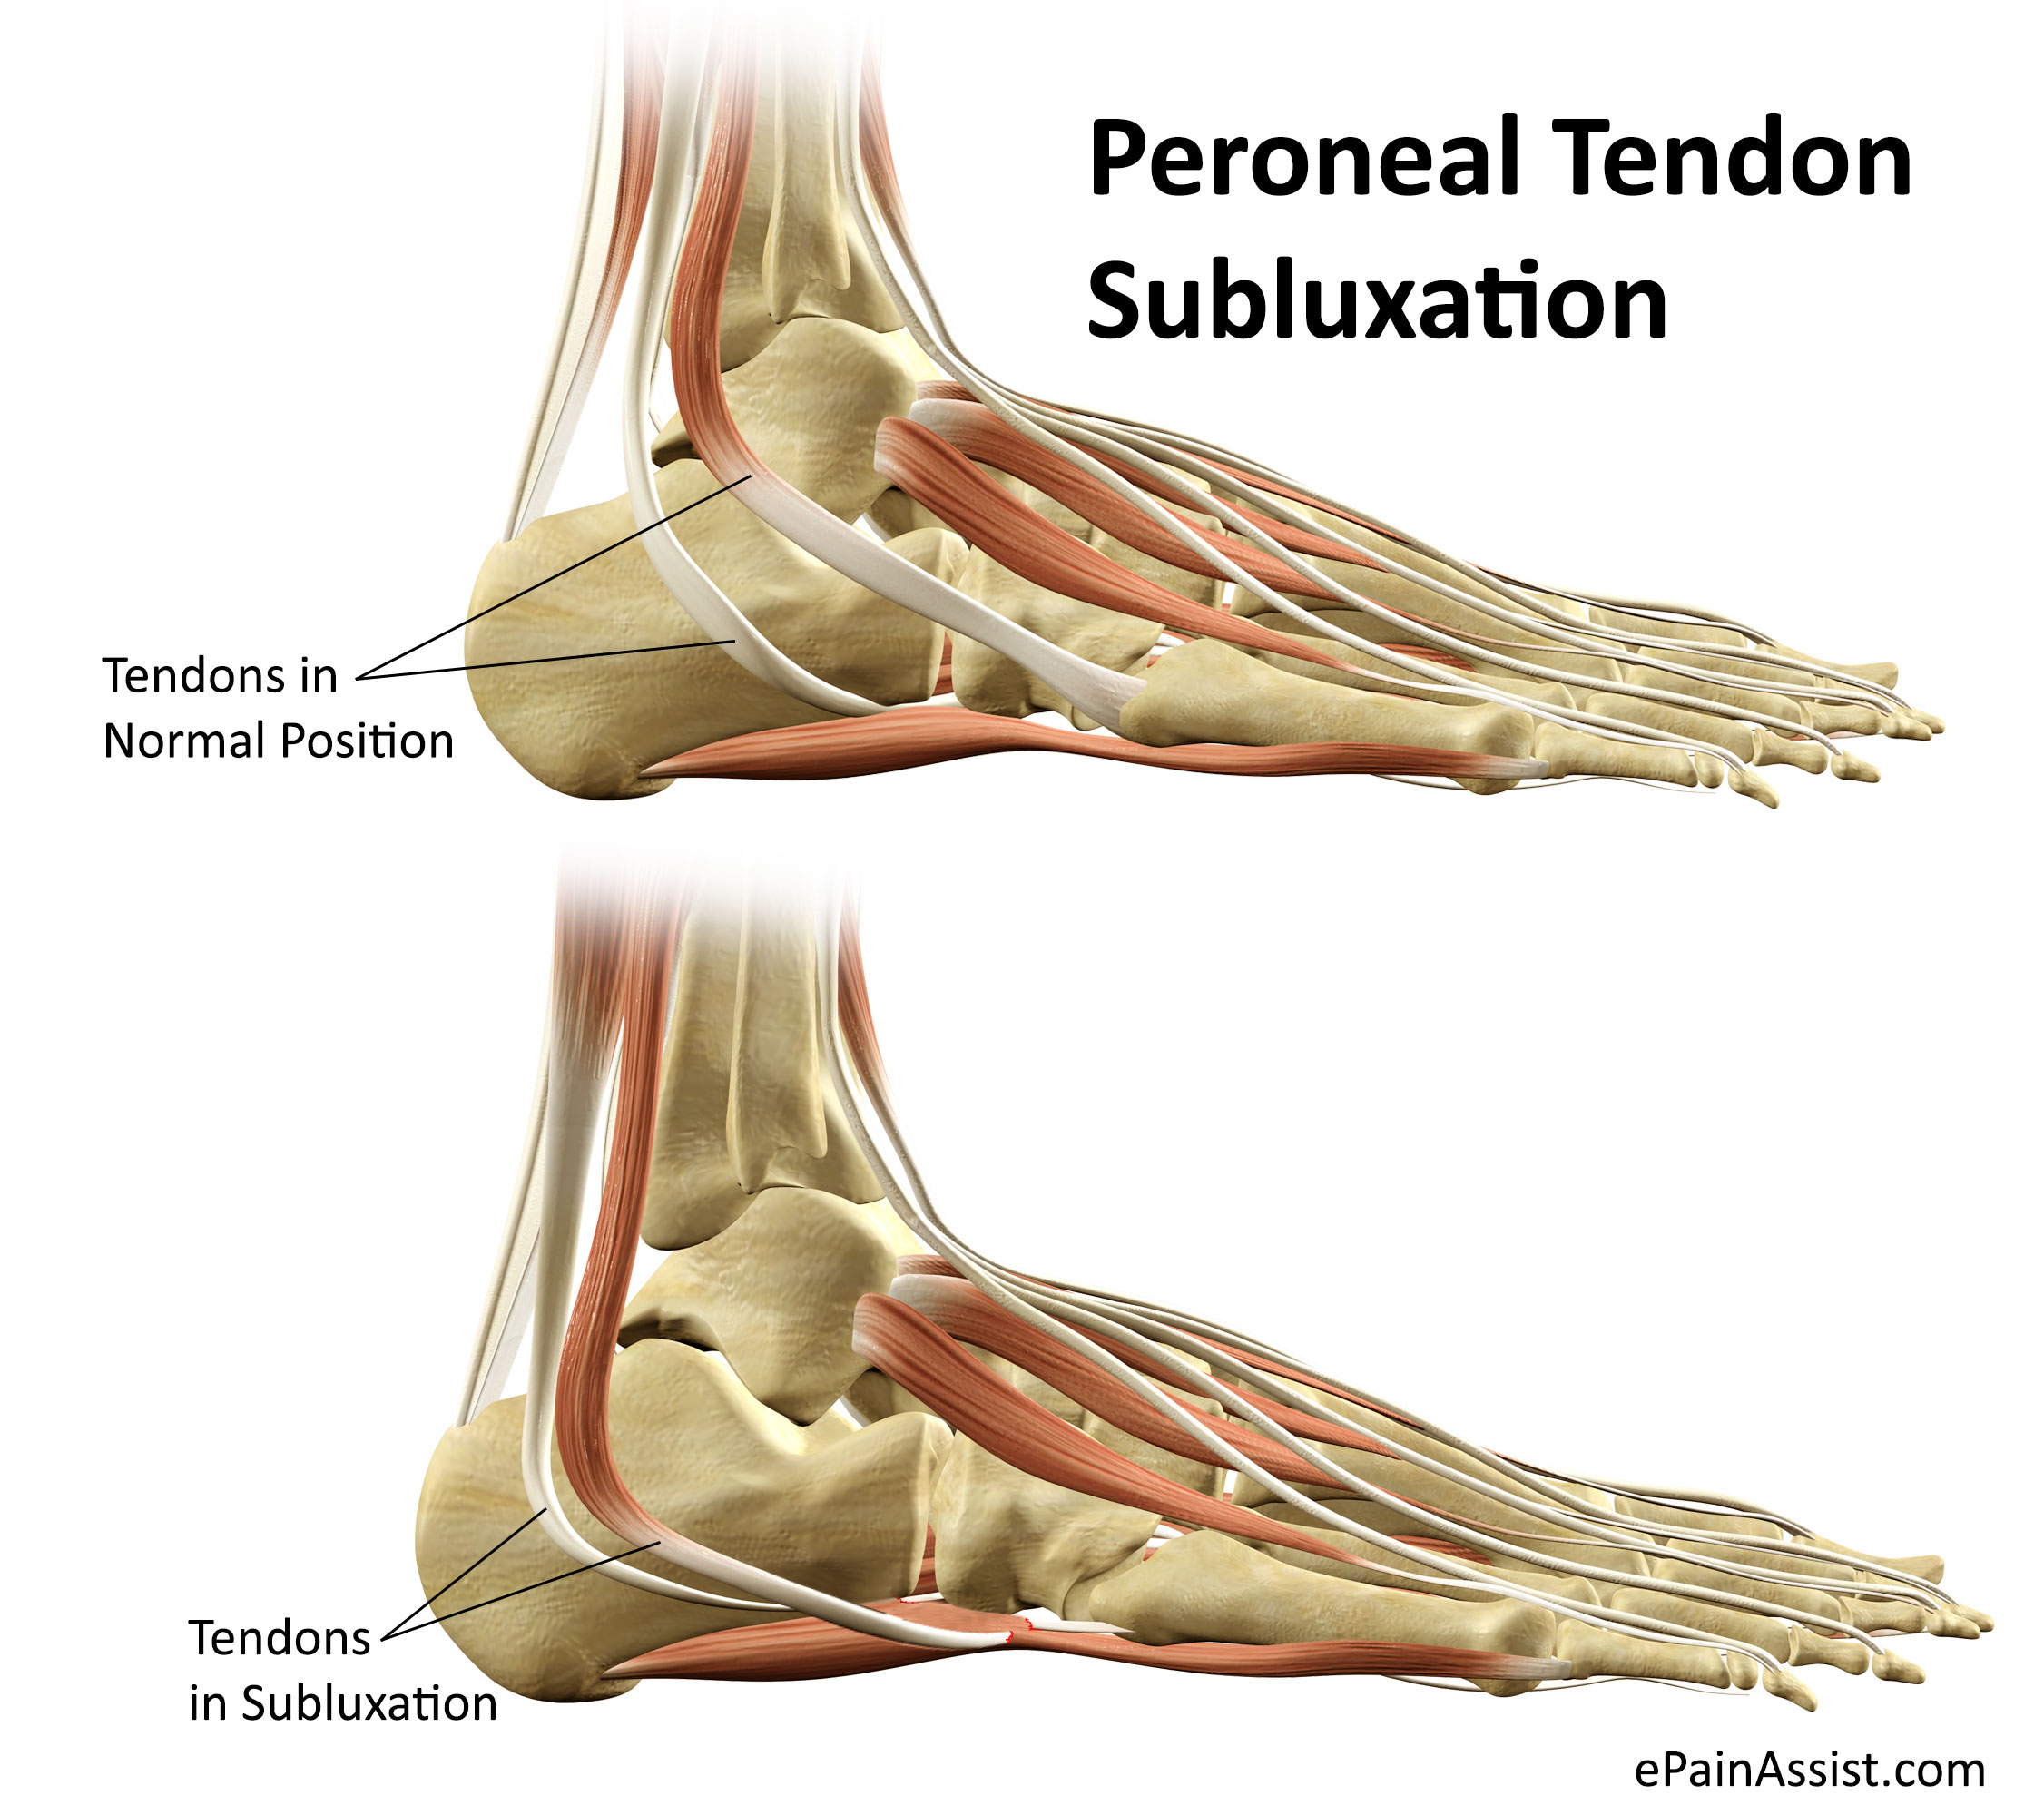 Peroneal Tendon Subluxation: Treatment, Recovery, Exercises ...